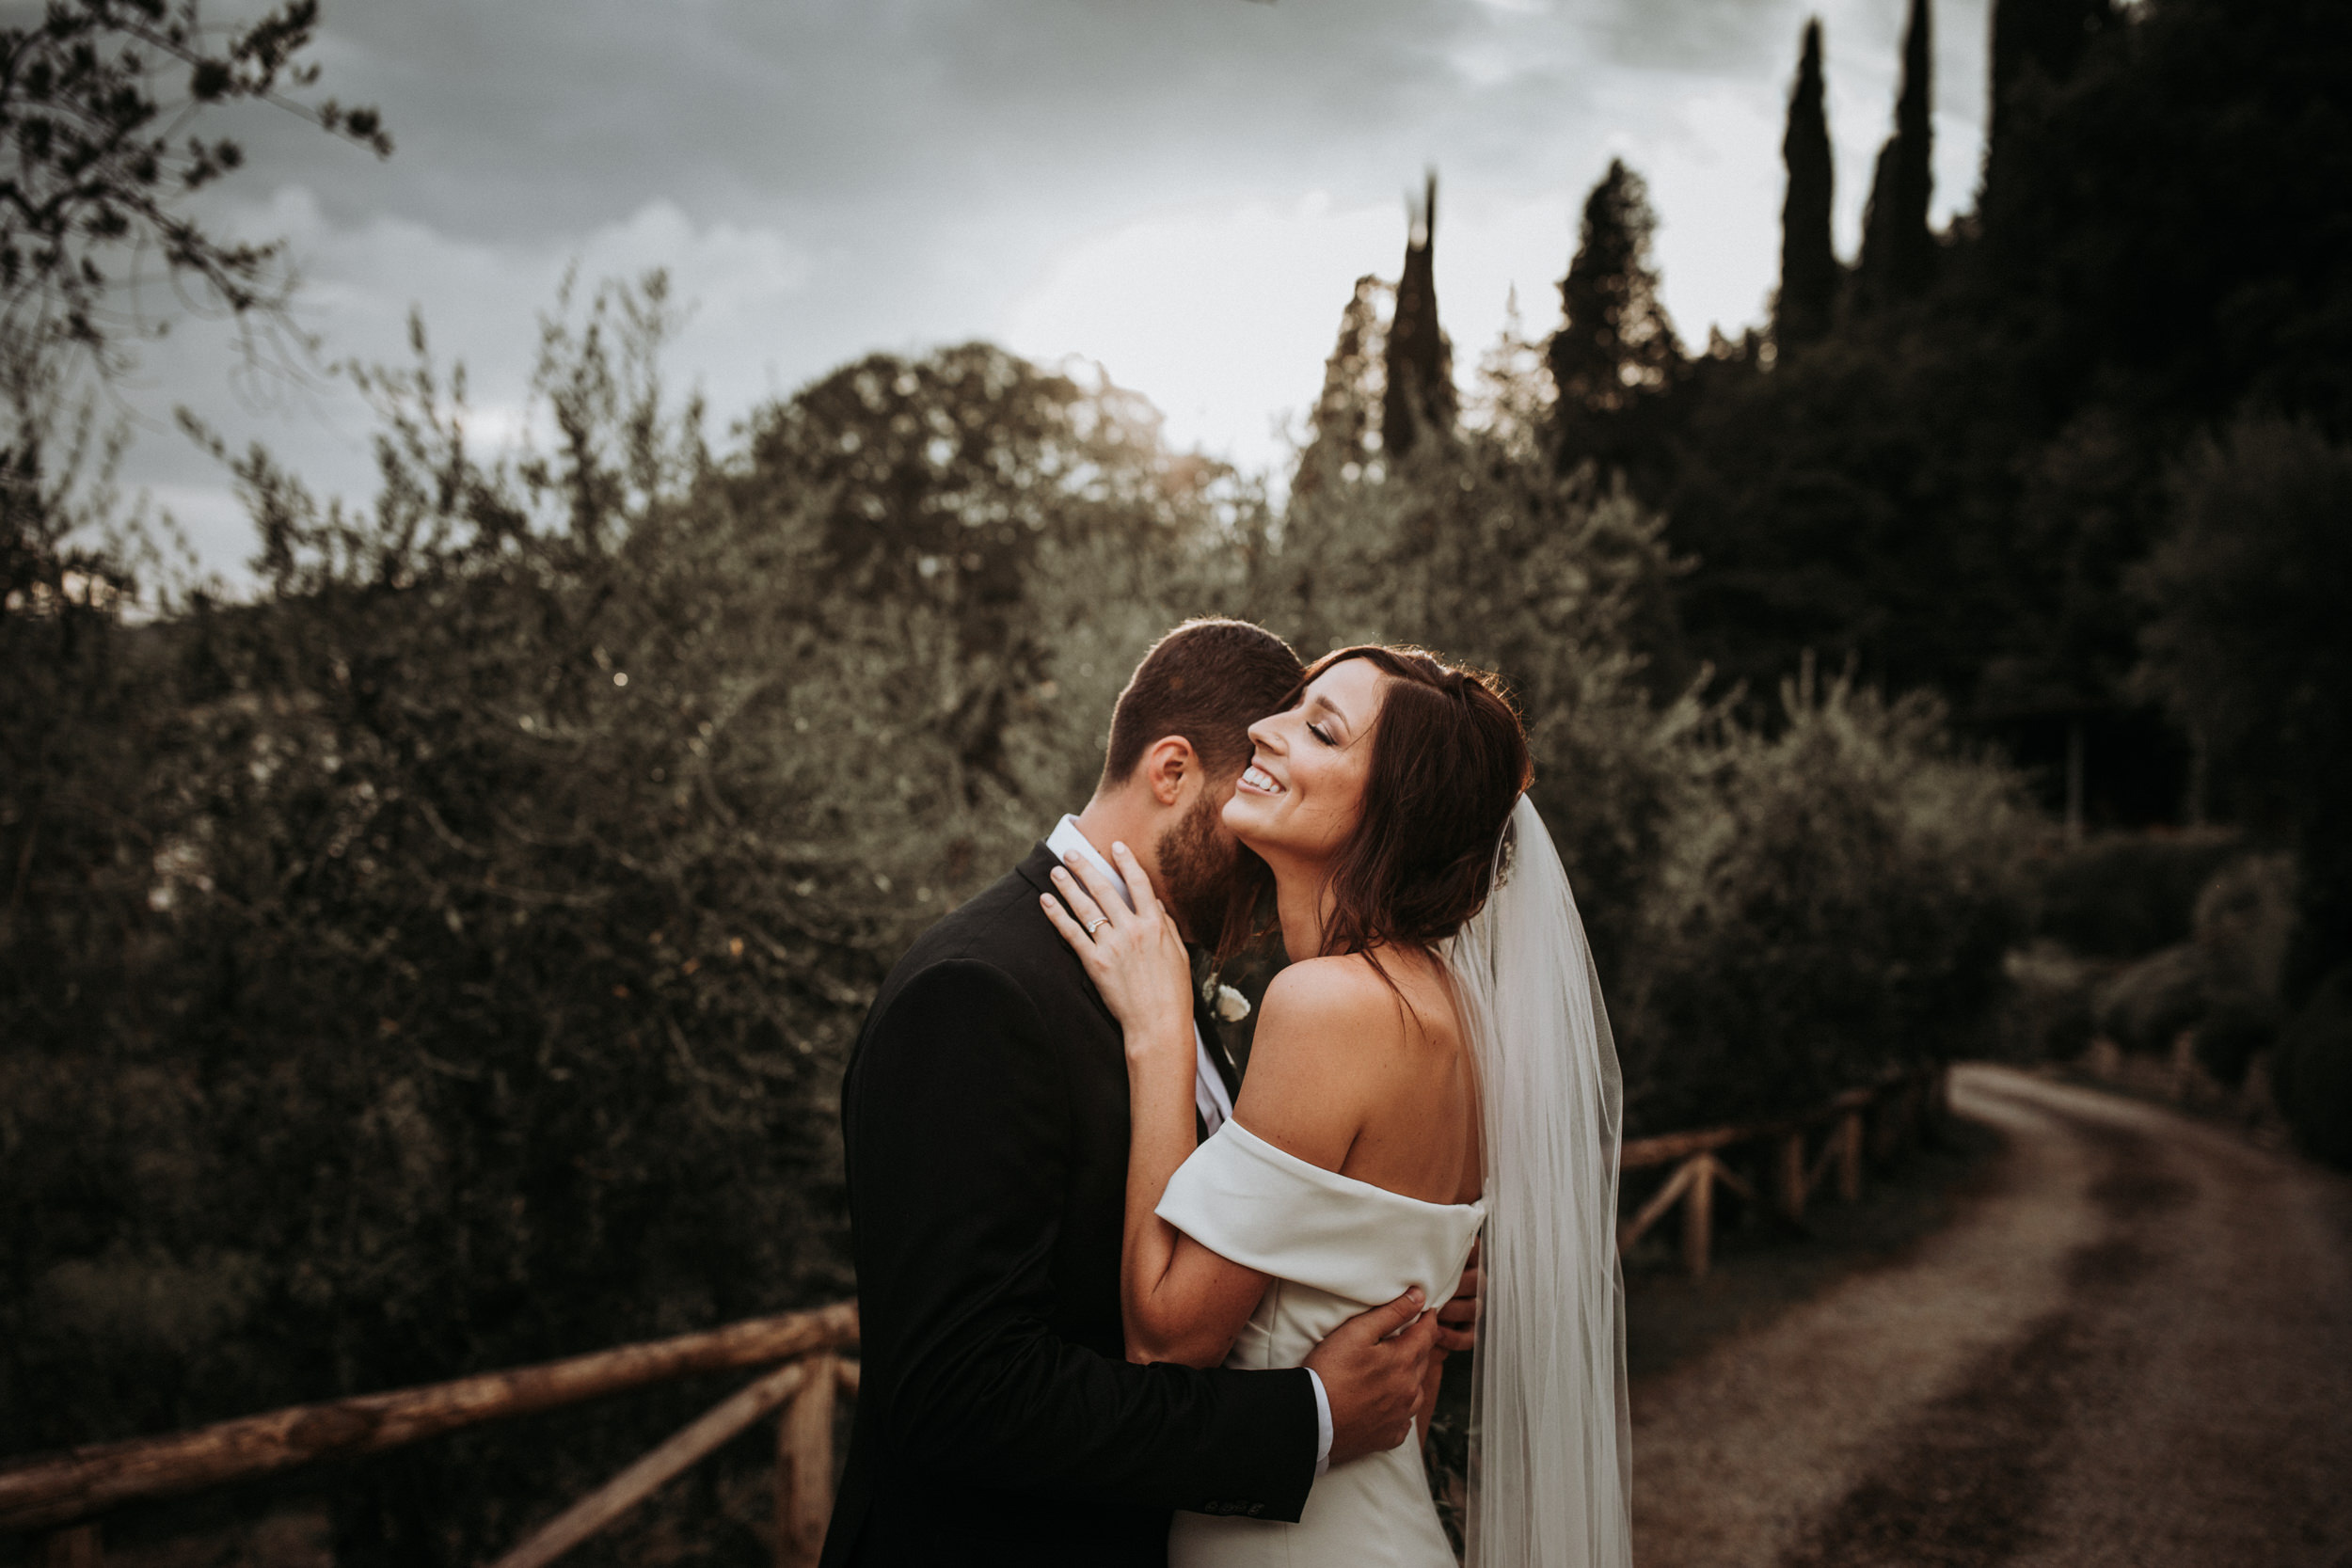 dm_photography_KW_Tuscanyweddingday_308